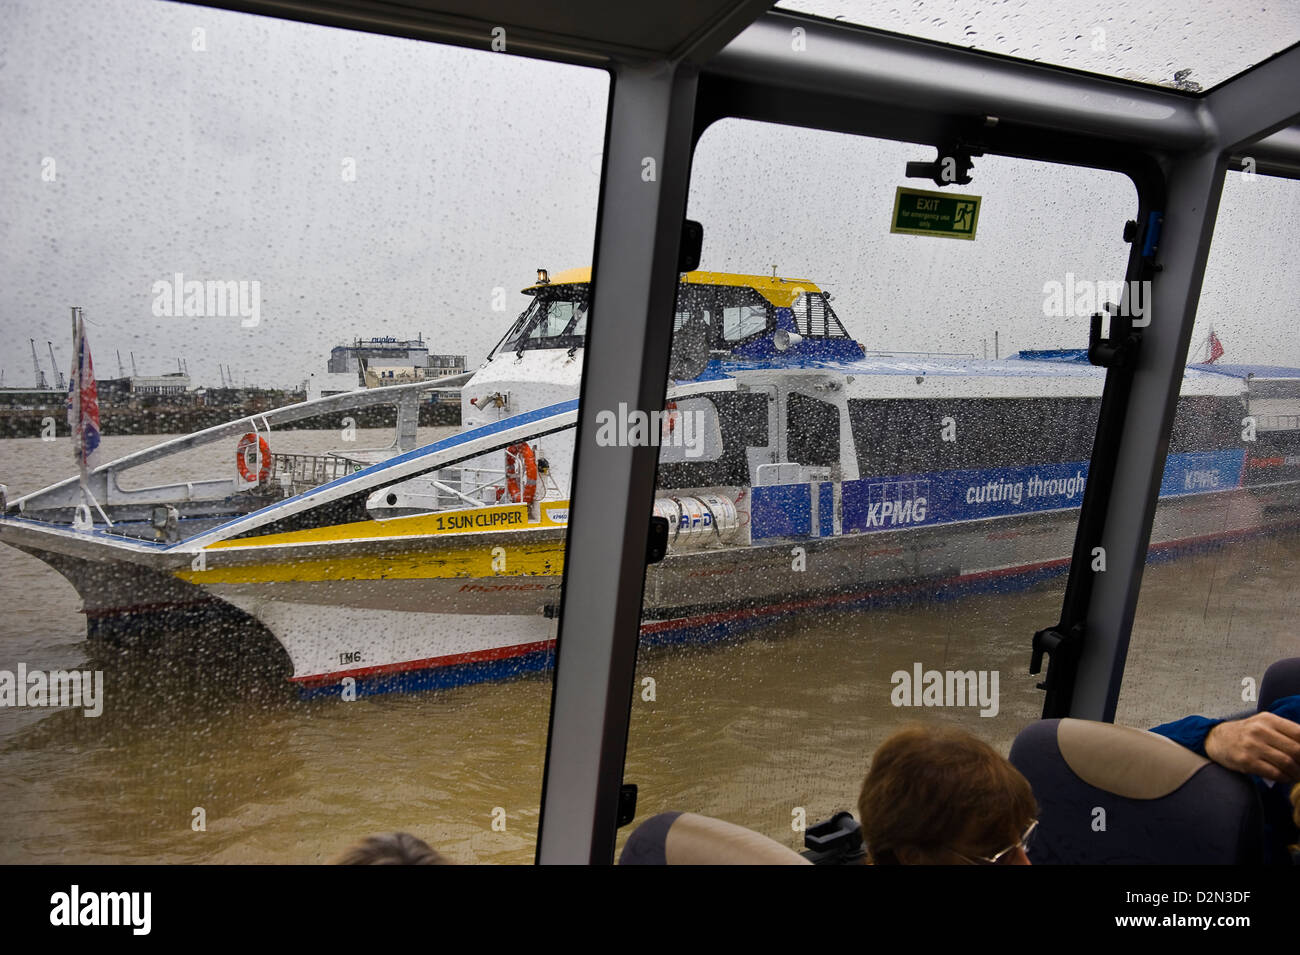 A Thames Clipper docking at Greenwich Peninsula, London, UK - Stock Image